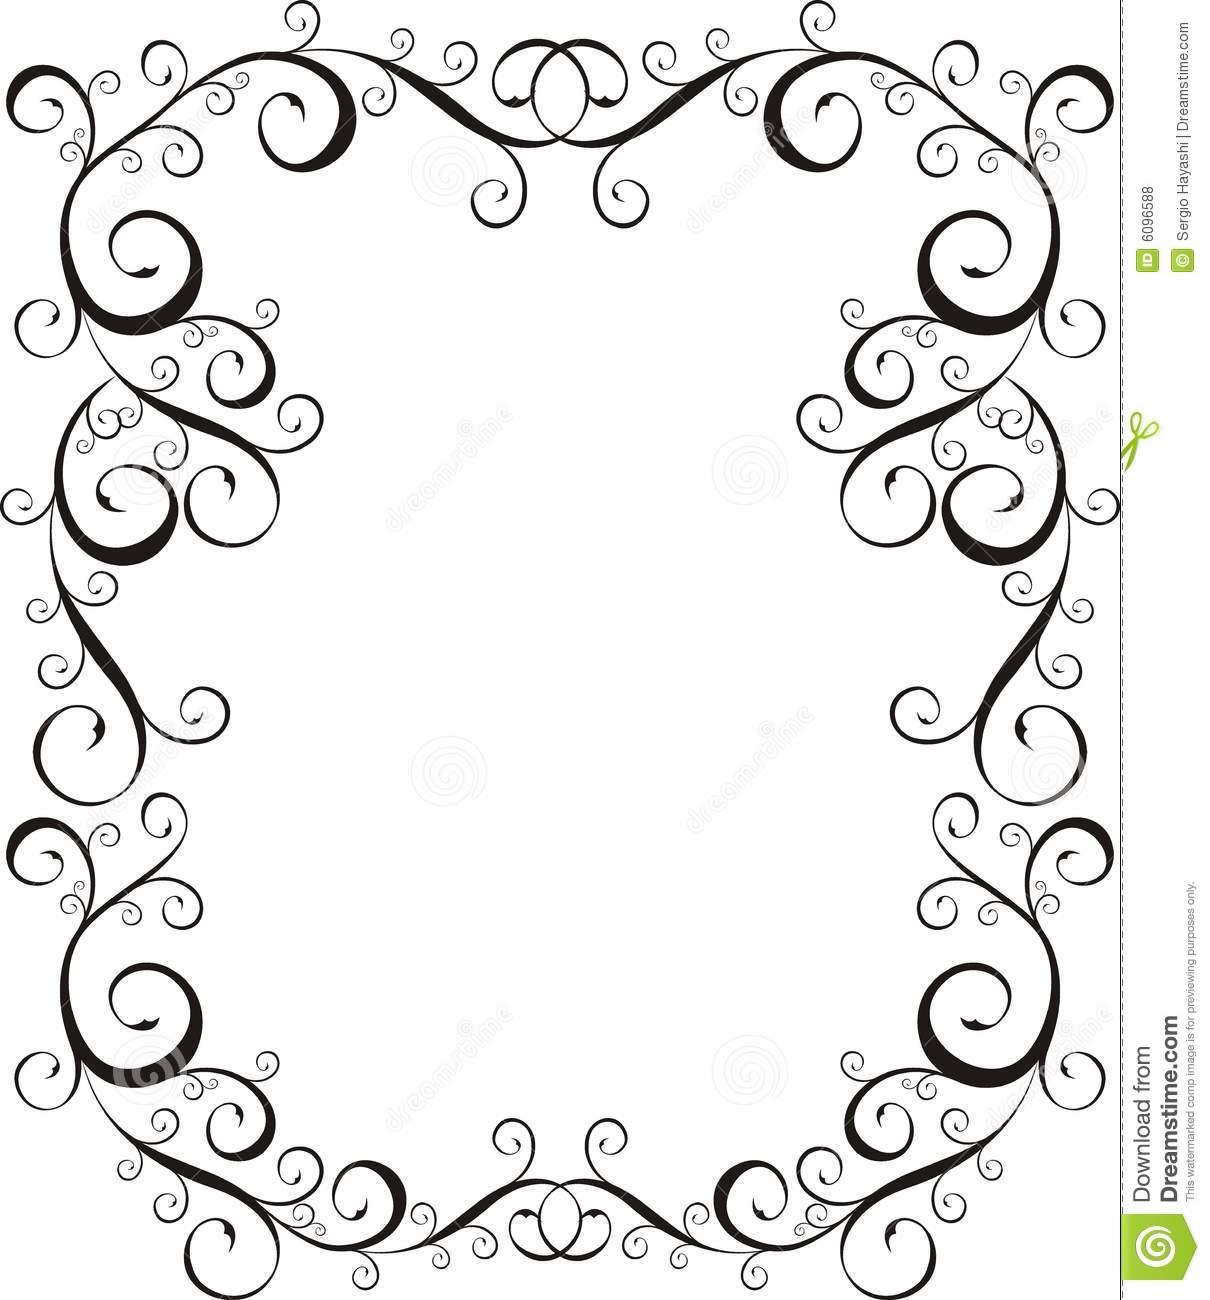 Frame Letter border stock vector. Illustration of craft - 6096588